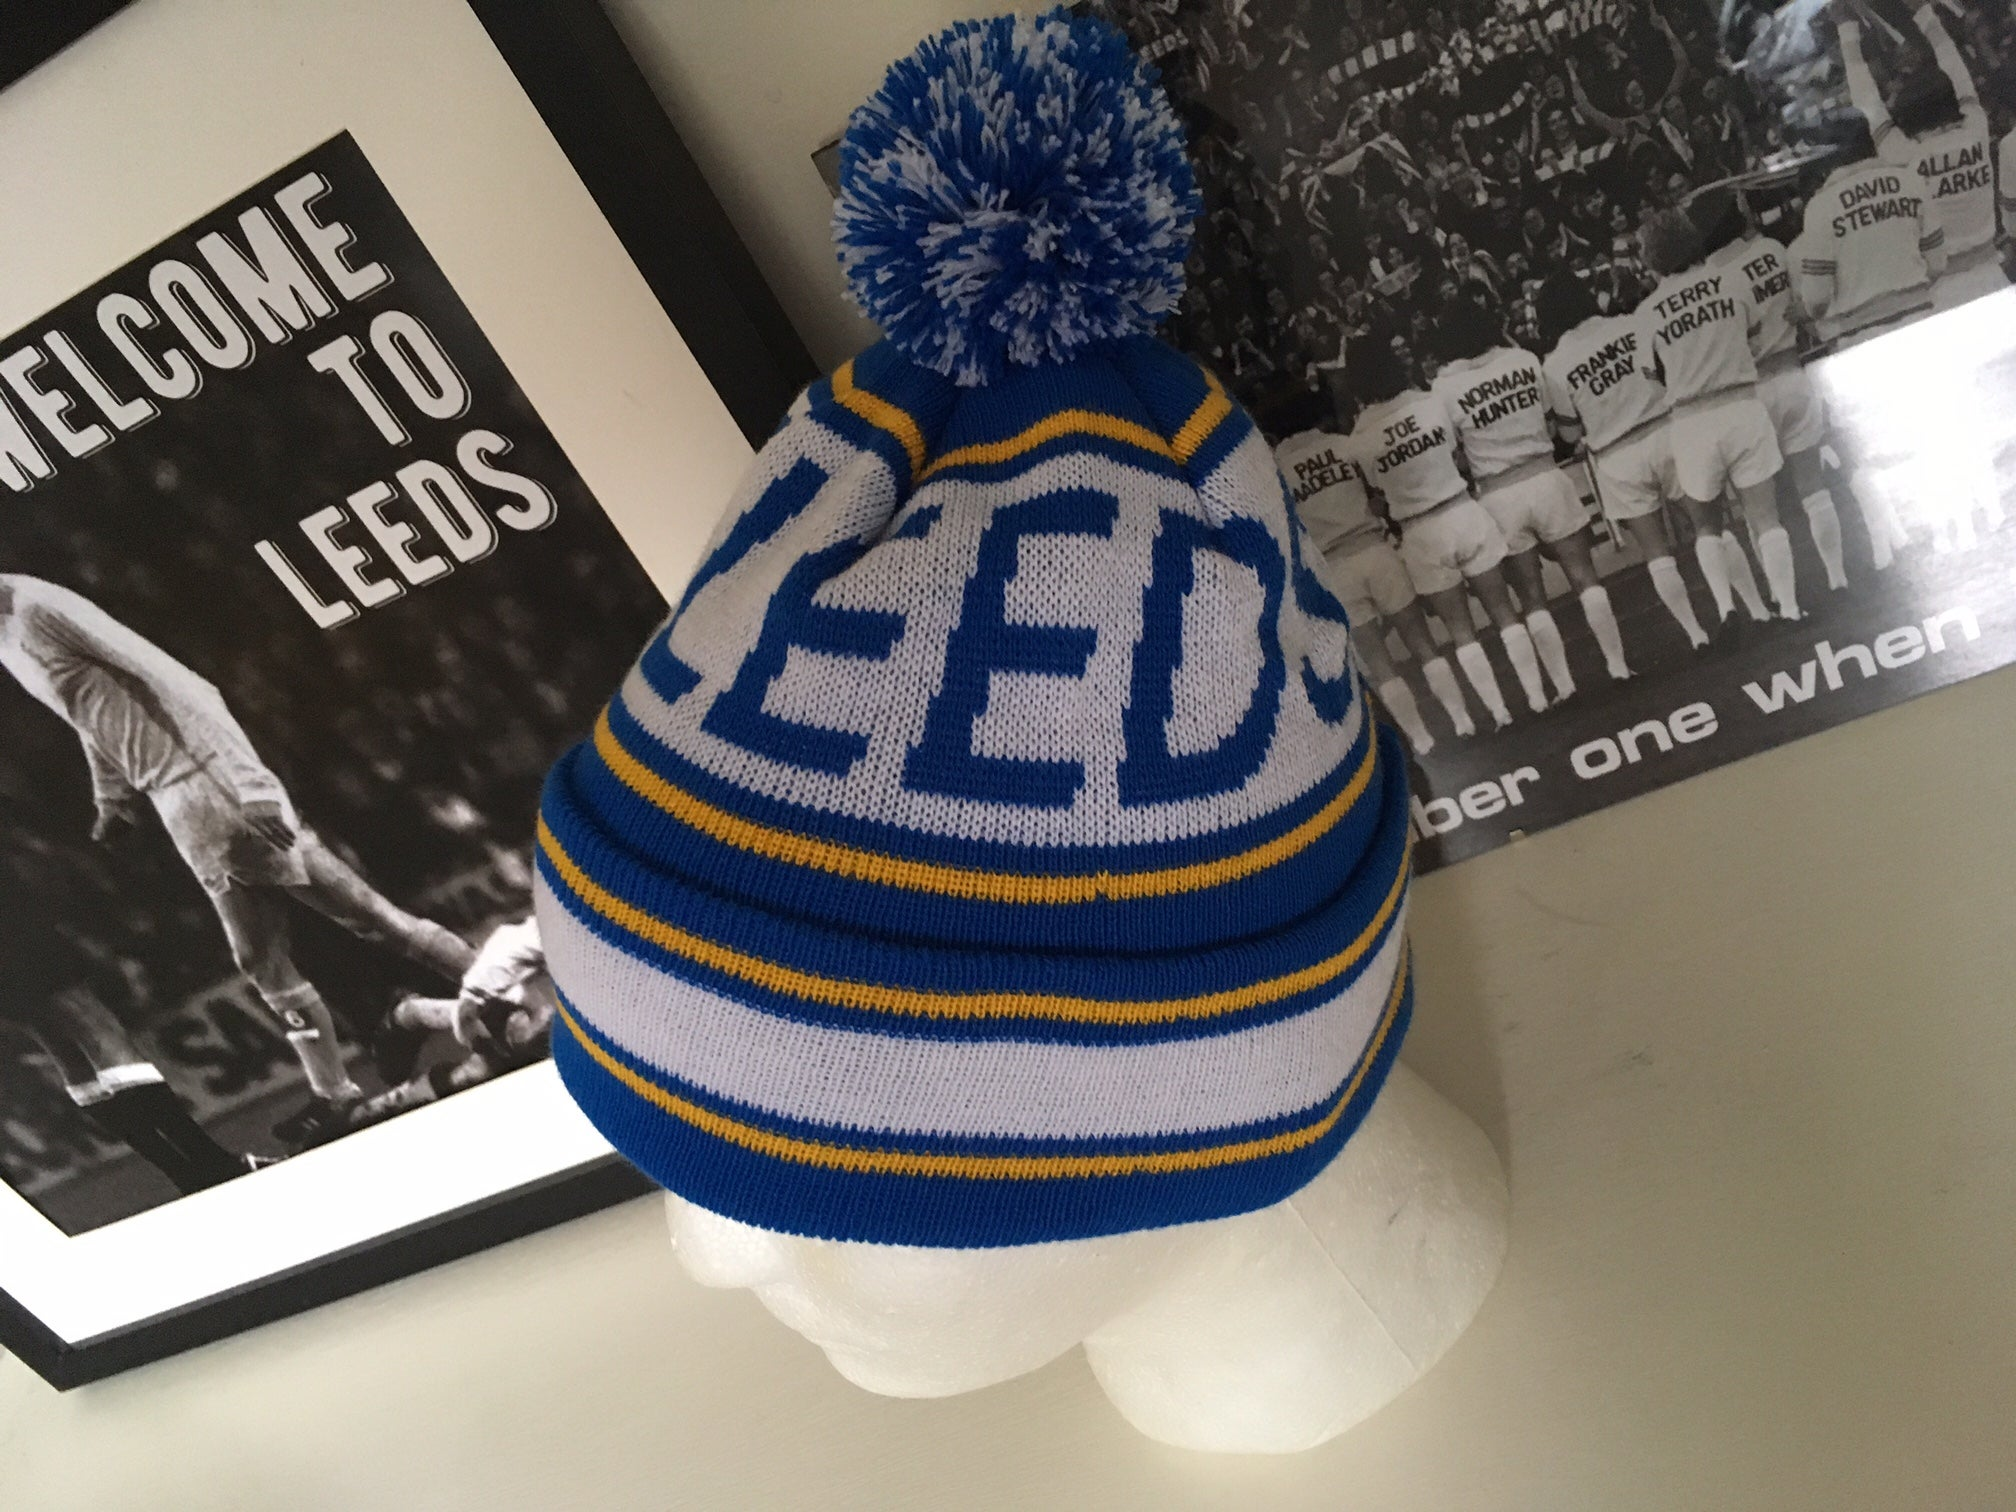 21013 e06c2  czech image of leeds bobble hat fd69b 65878 9d723042fe2